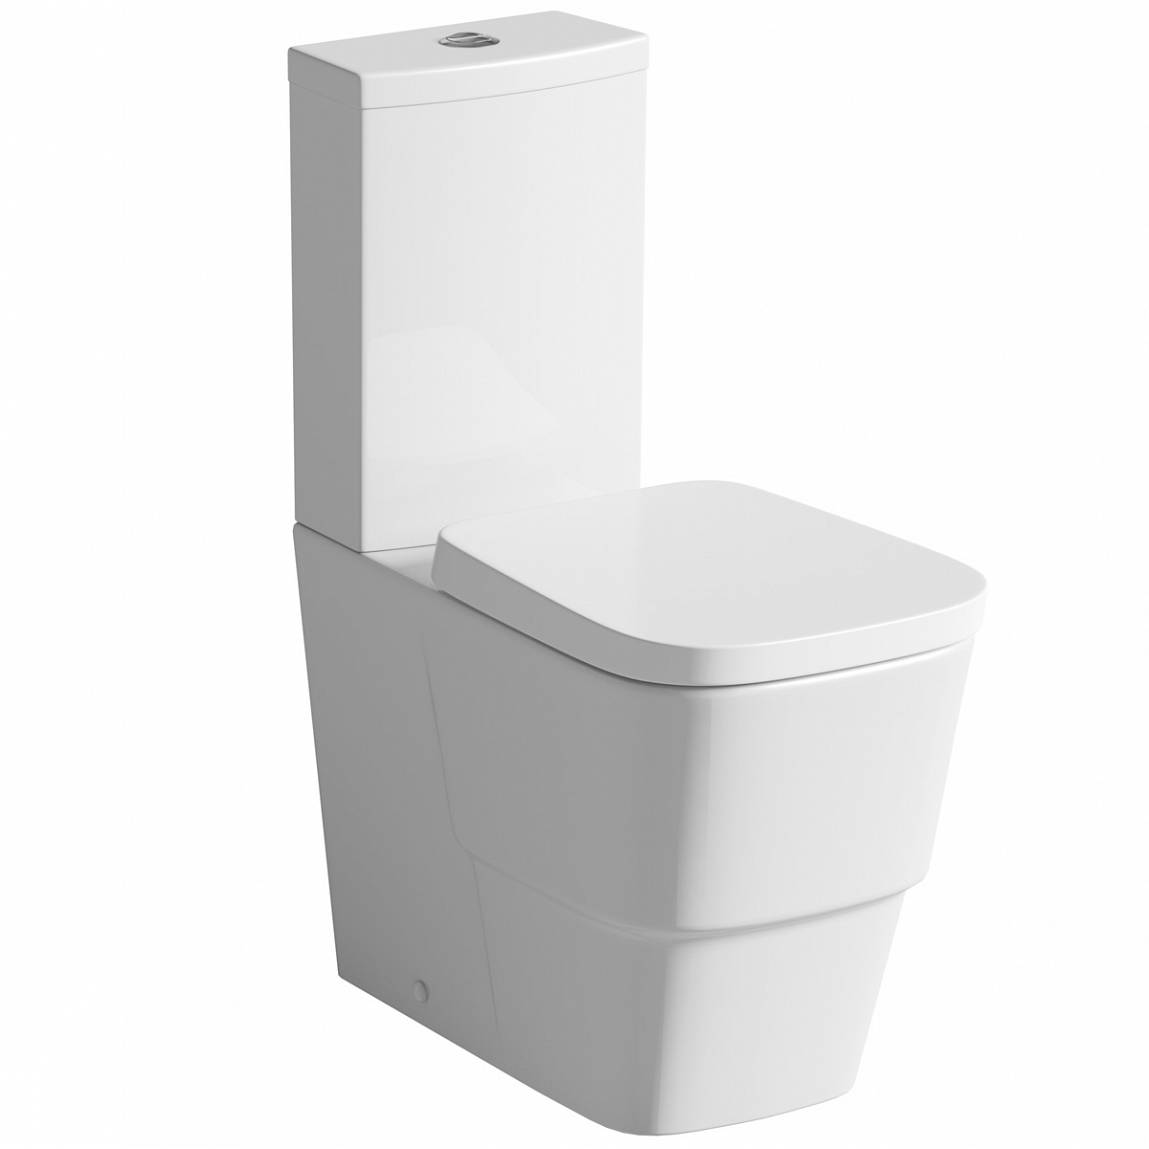 Image of Princeton Close Coupled Toilet inc Luxury Soft Close Seat